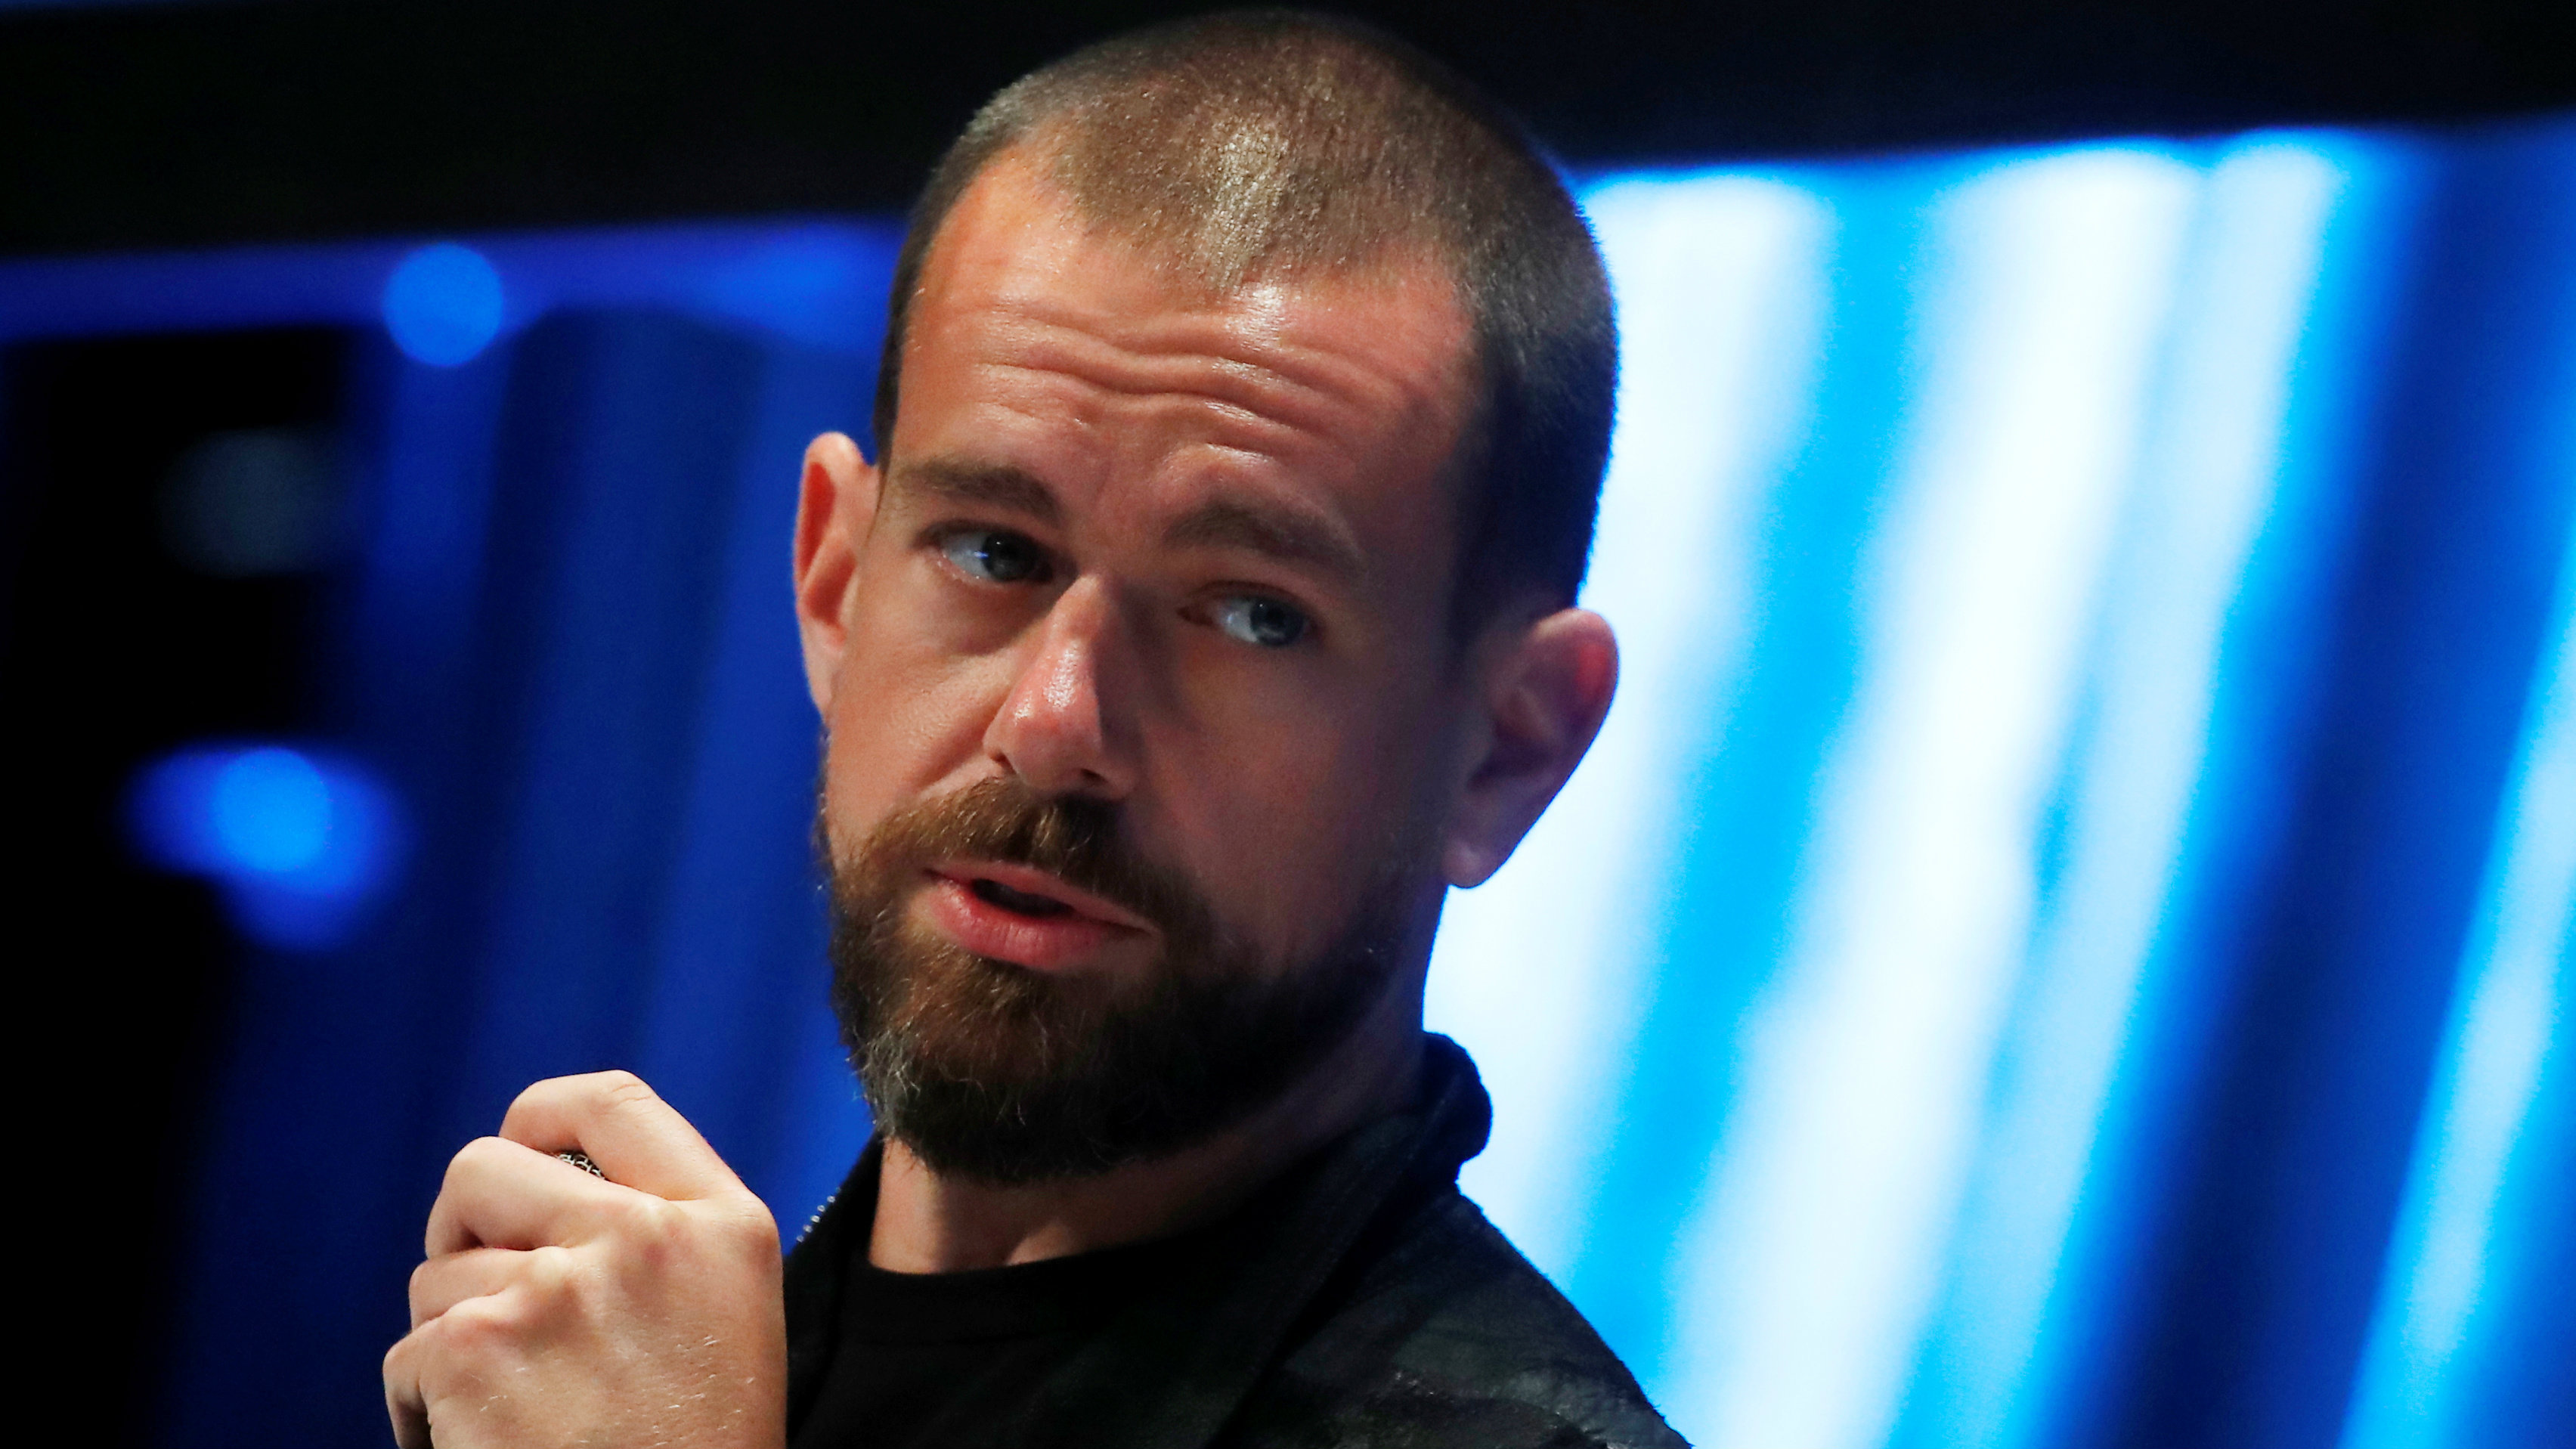 Jack Dorsey, CEO and co-founder of Twitter and founder and CEO of Square, speaks at the Consensus 2018 blockchain technology conference in New York City, New York, U.S., May 16, 2018.